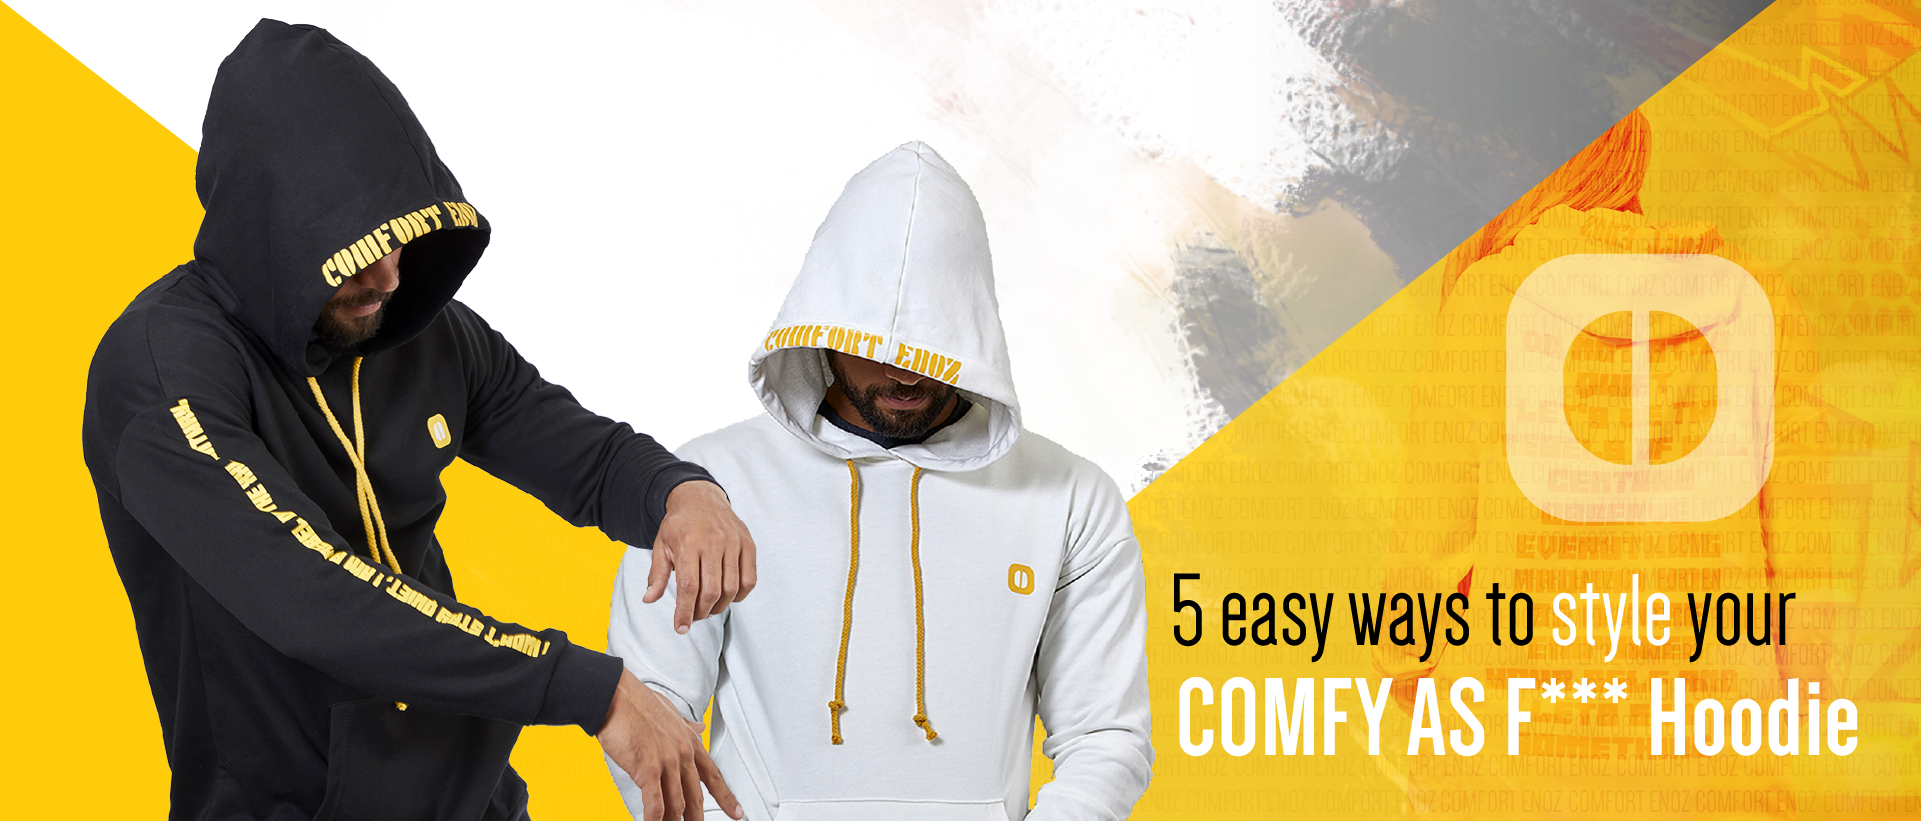 5 Easy Ways to Style Your Comfy As F**k Hoodie